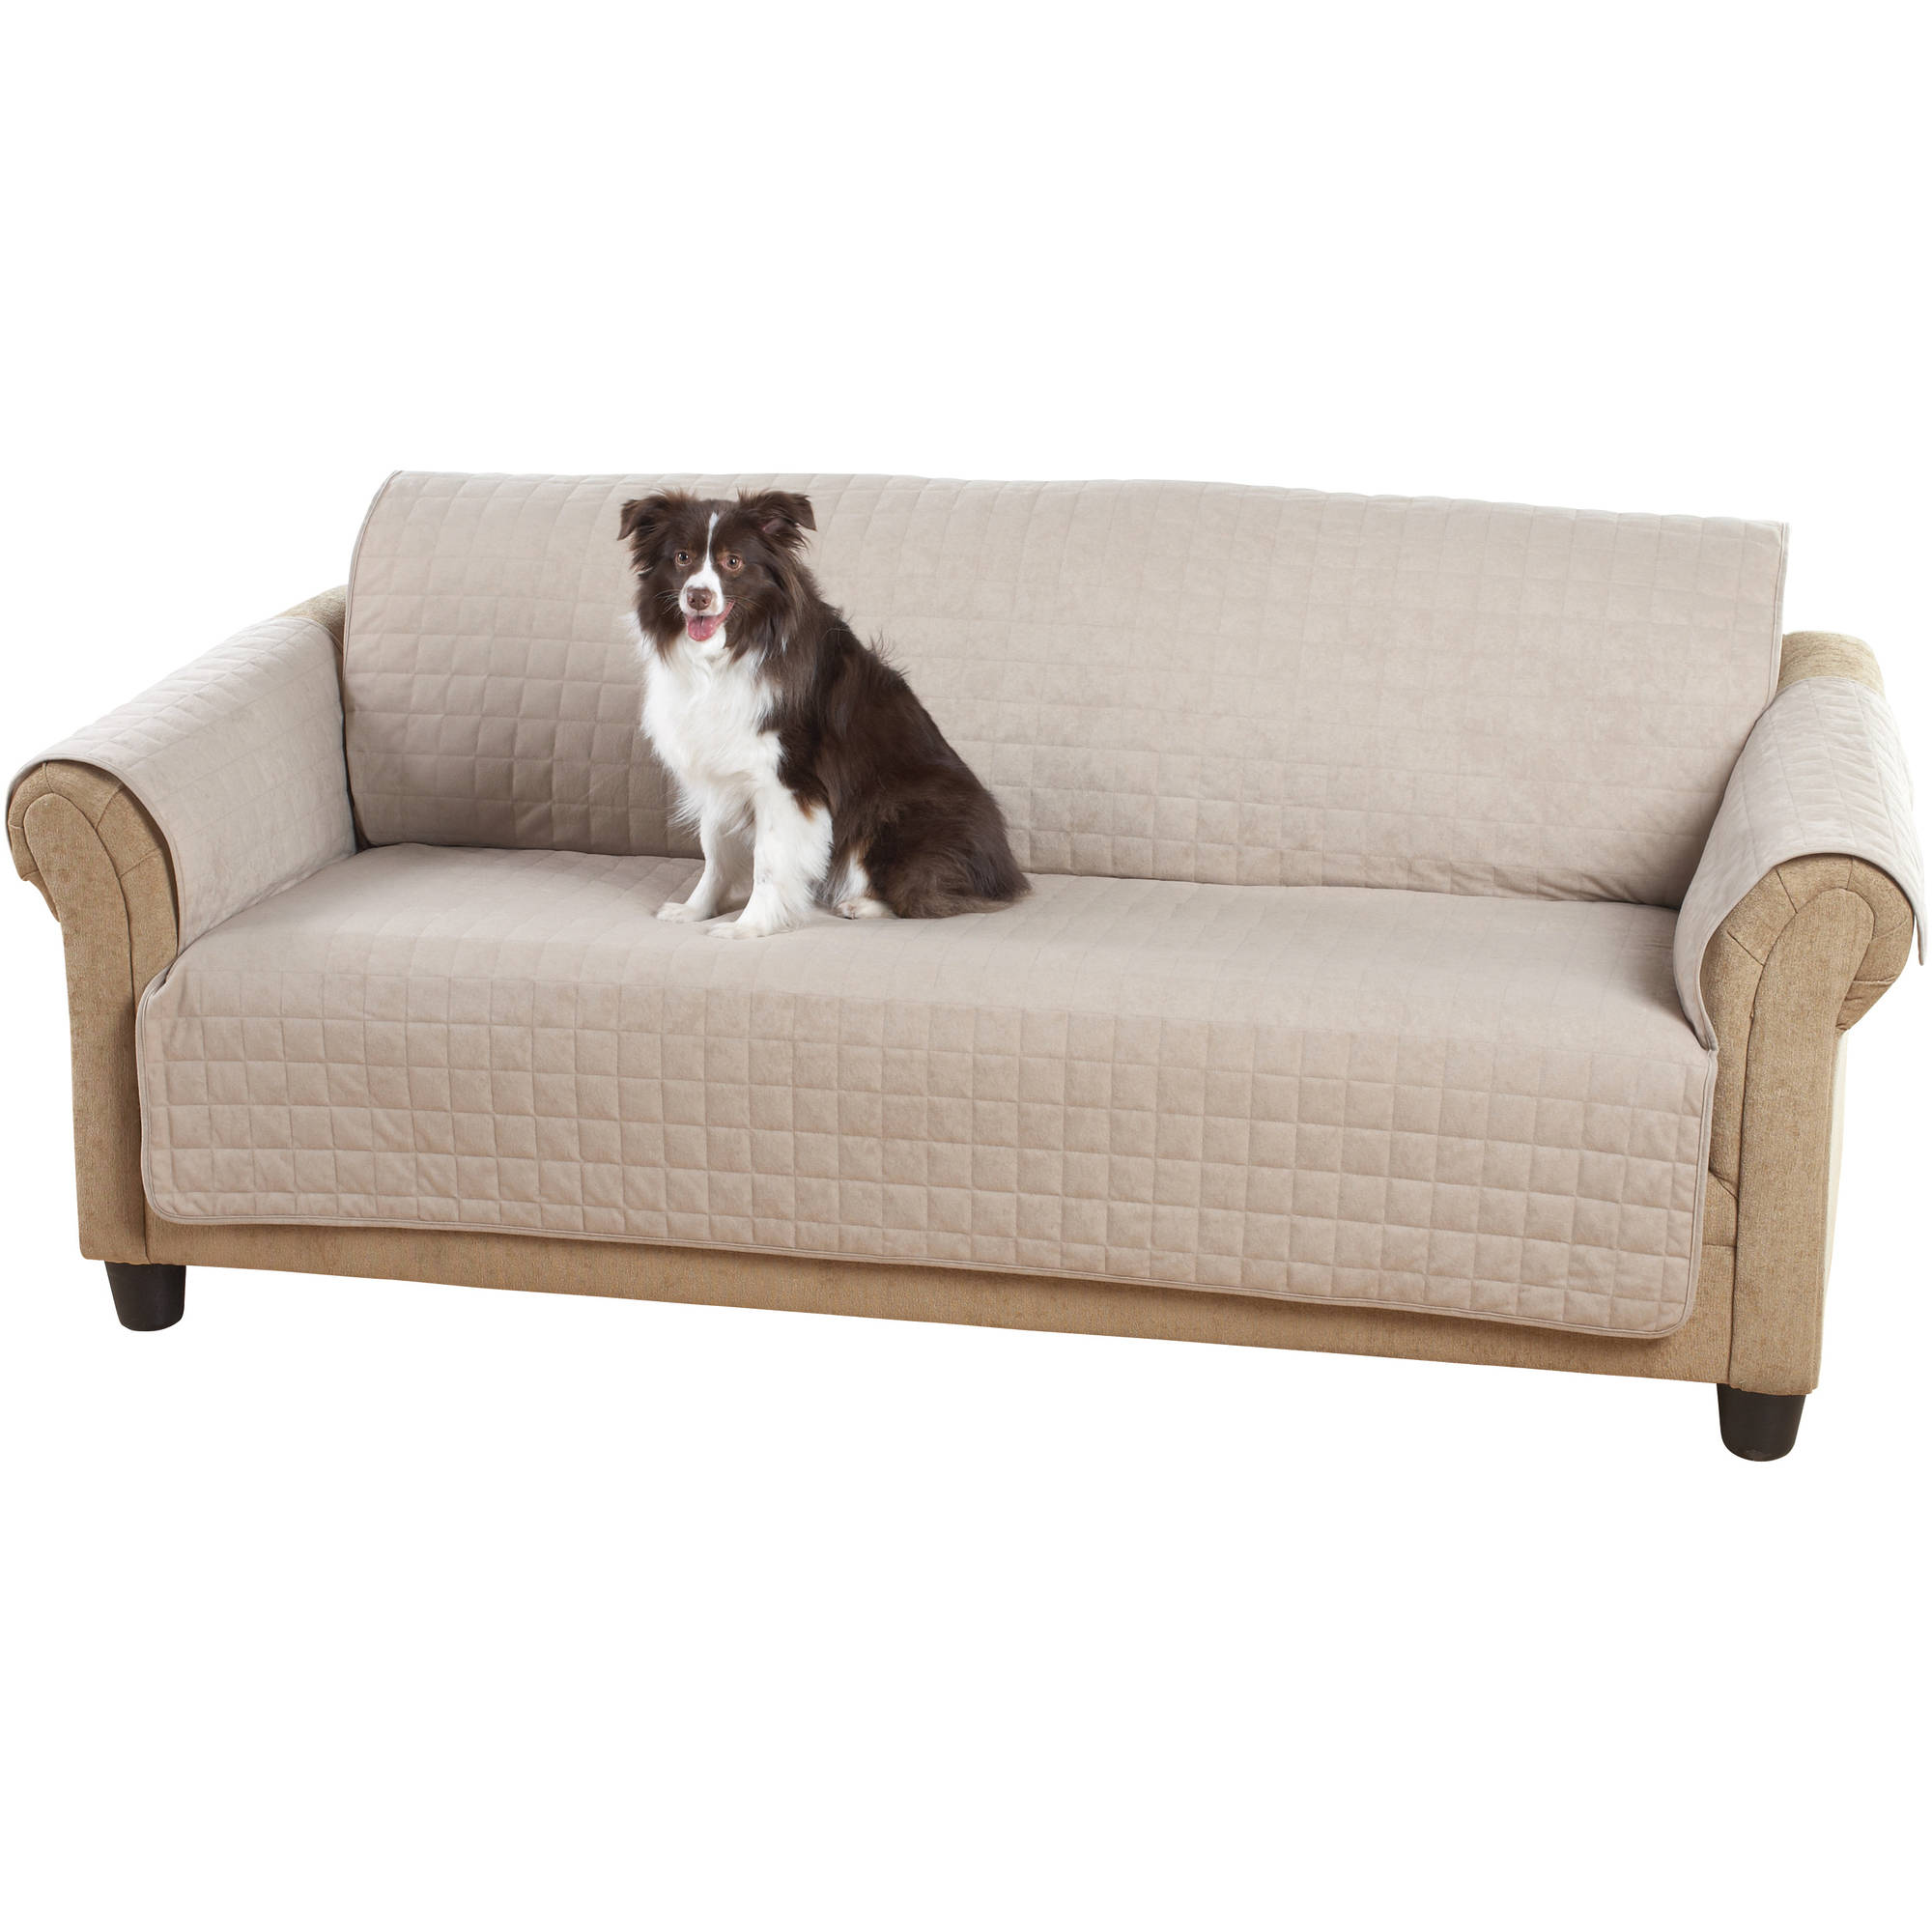 Mainstays Sofa Protector, Warm Chocolate